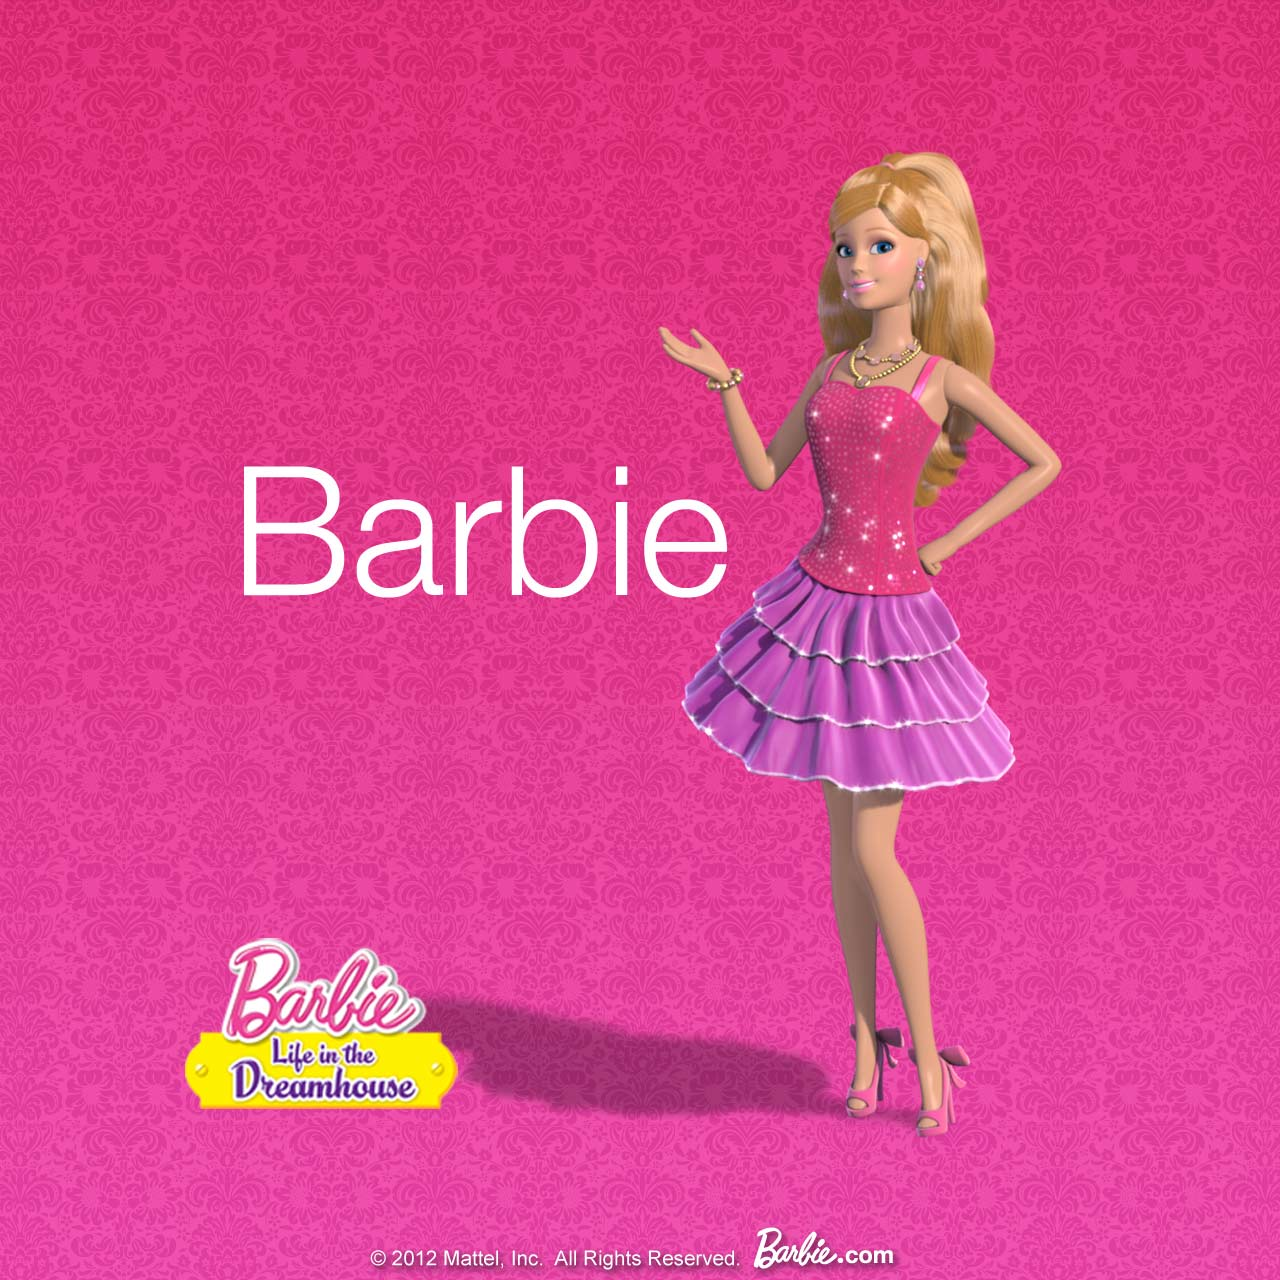 Wallpaper Chelsea 3d Android Diary Of C A Cupid Imagens Barbie Life In The Dreamhouse